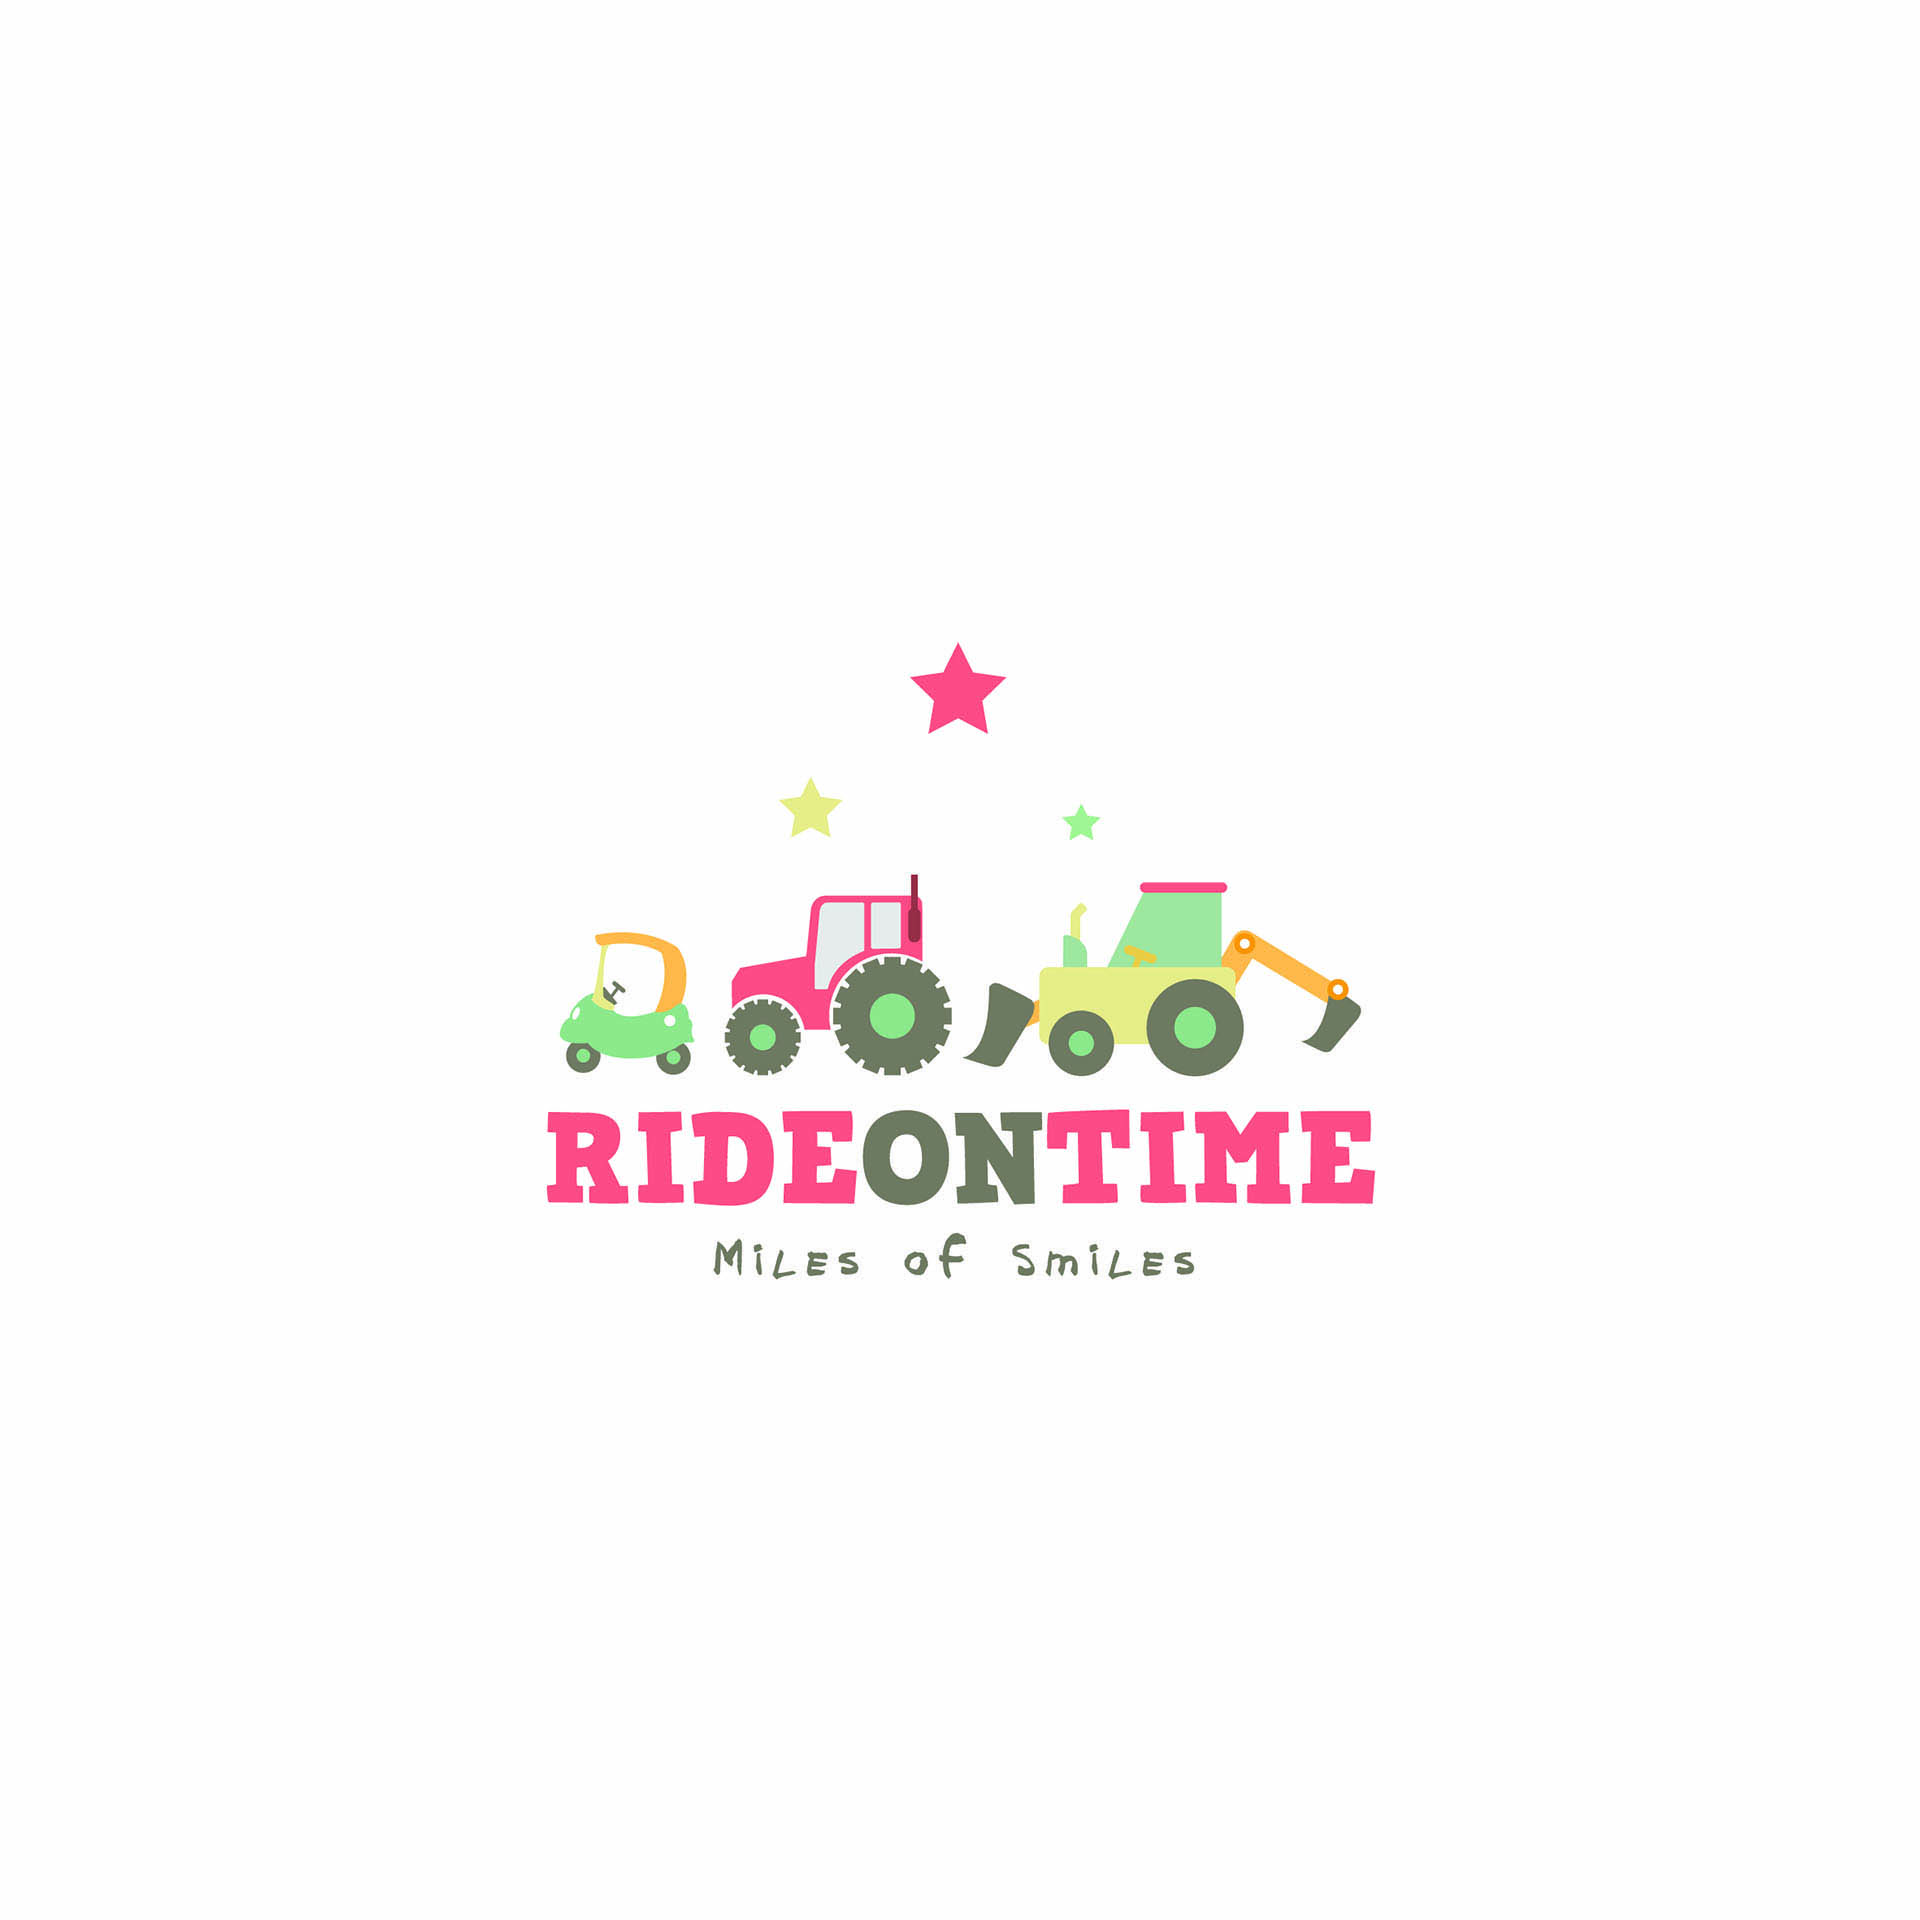 Ride On Time's logo